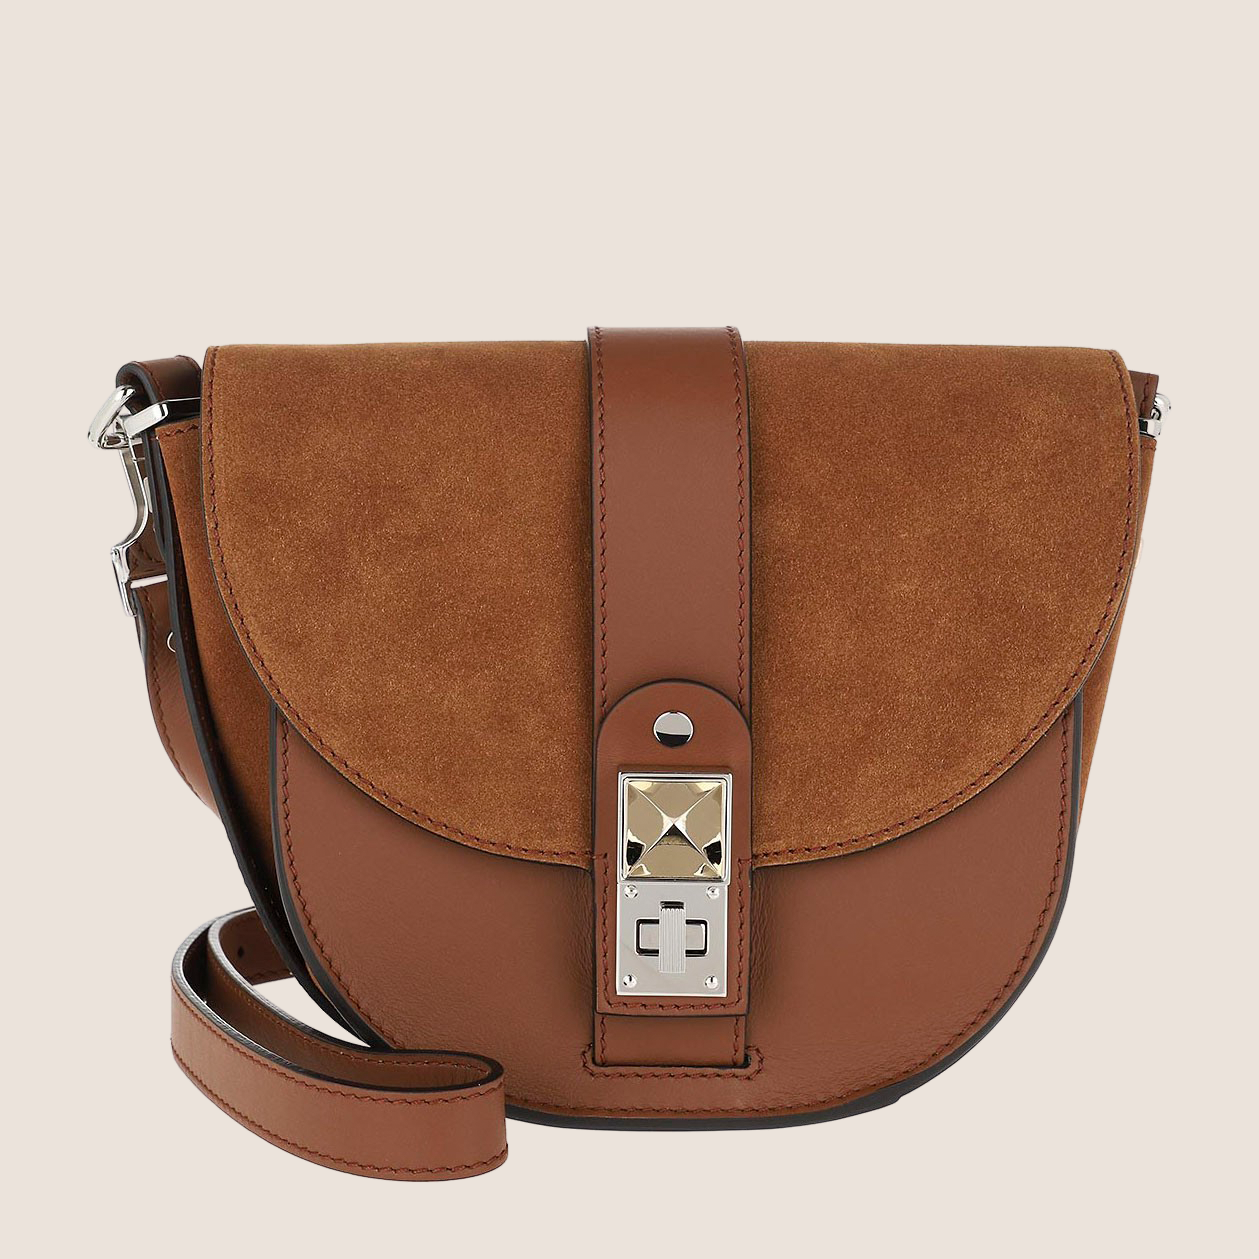 Proenza Schouler Saddle Bag